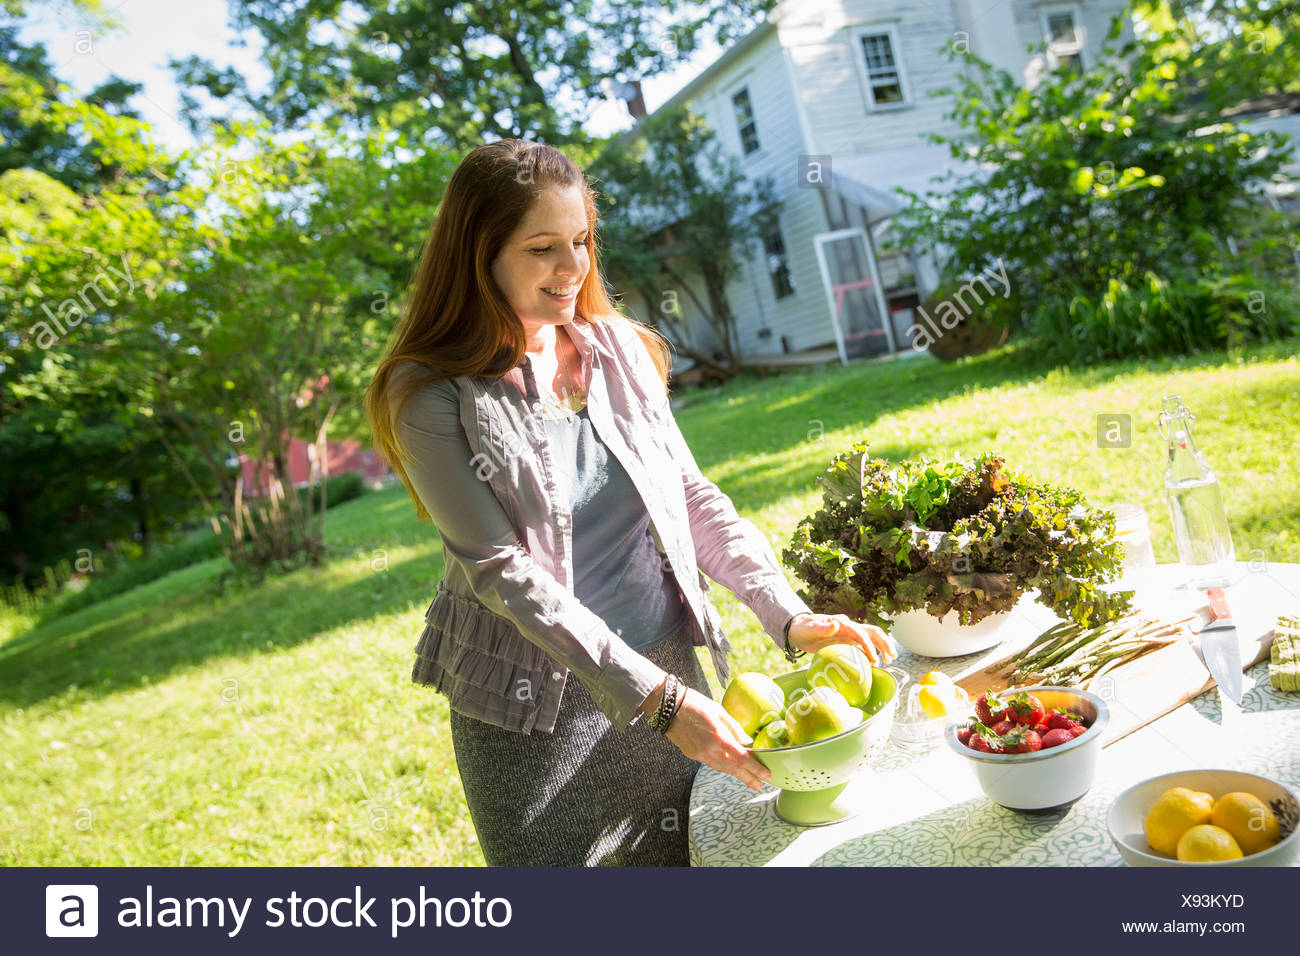 On farm woman in farmhouse garden preparing table fresh organic foods fresh vegetables salads bowls of fresh fruit for meal - Stock Image